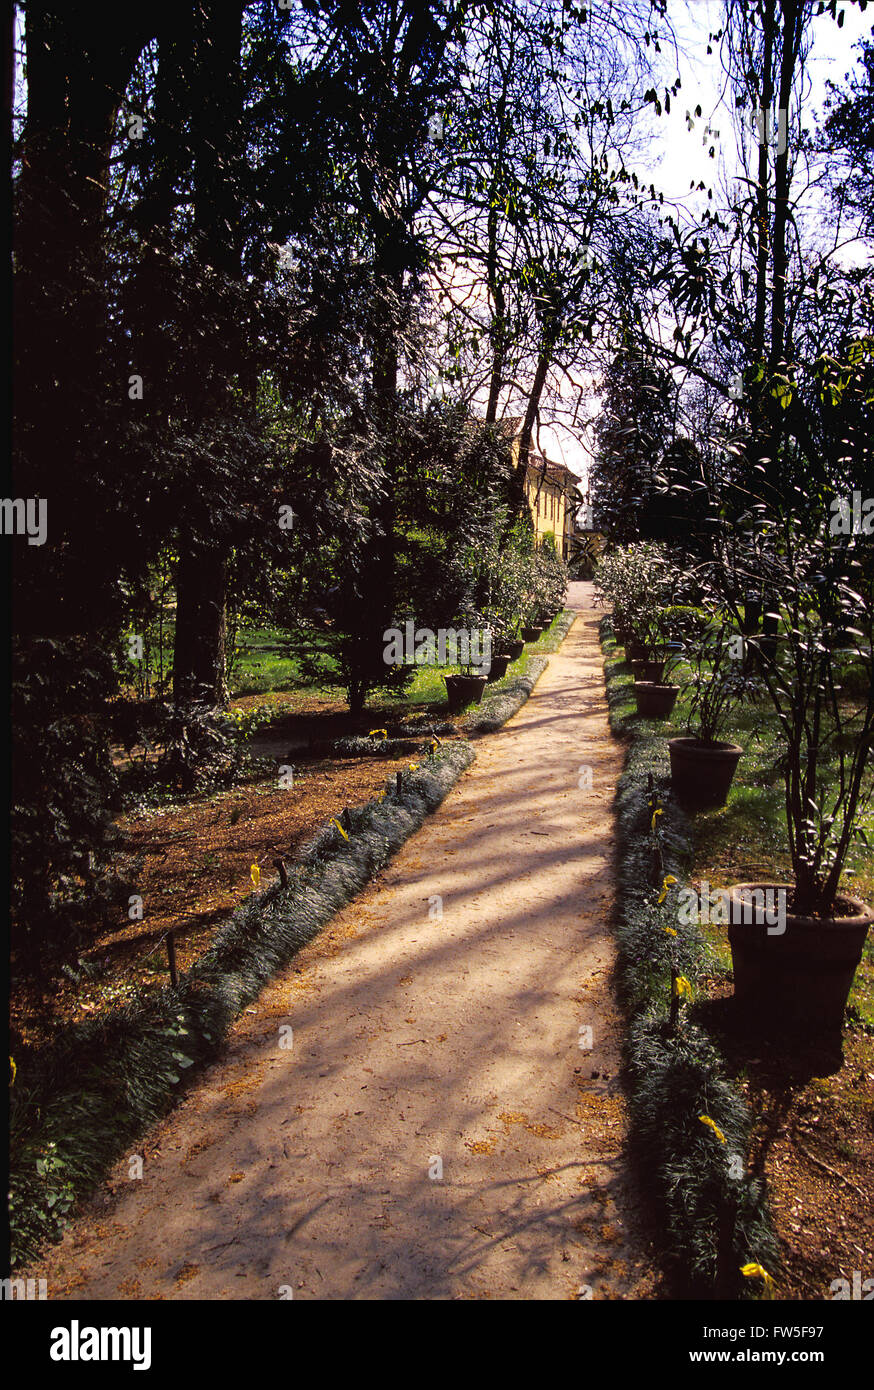 Villa Sant' Agata, outside Busseto, Parma, Italy. Giuseppe Verdi's home, the garden of the house he built - Stock Image